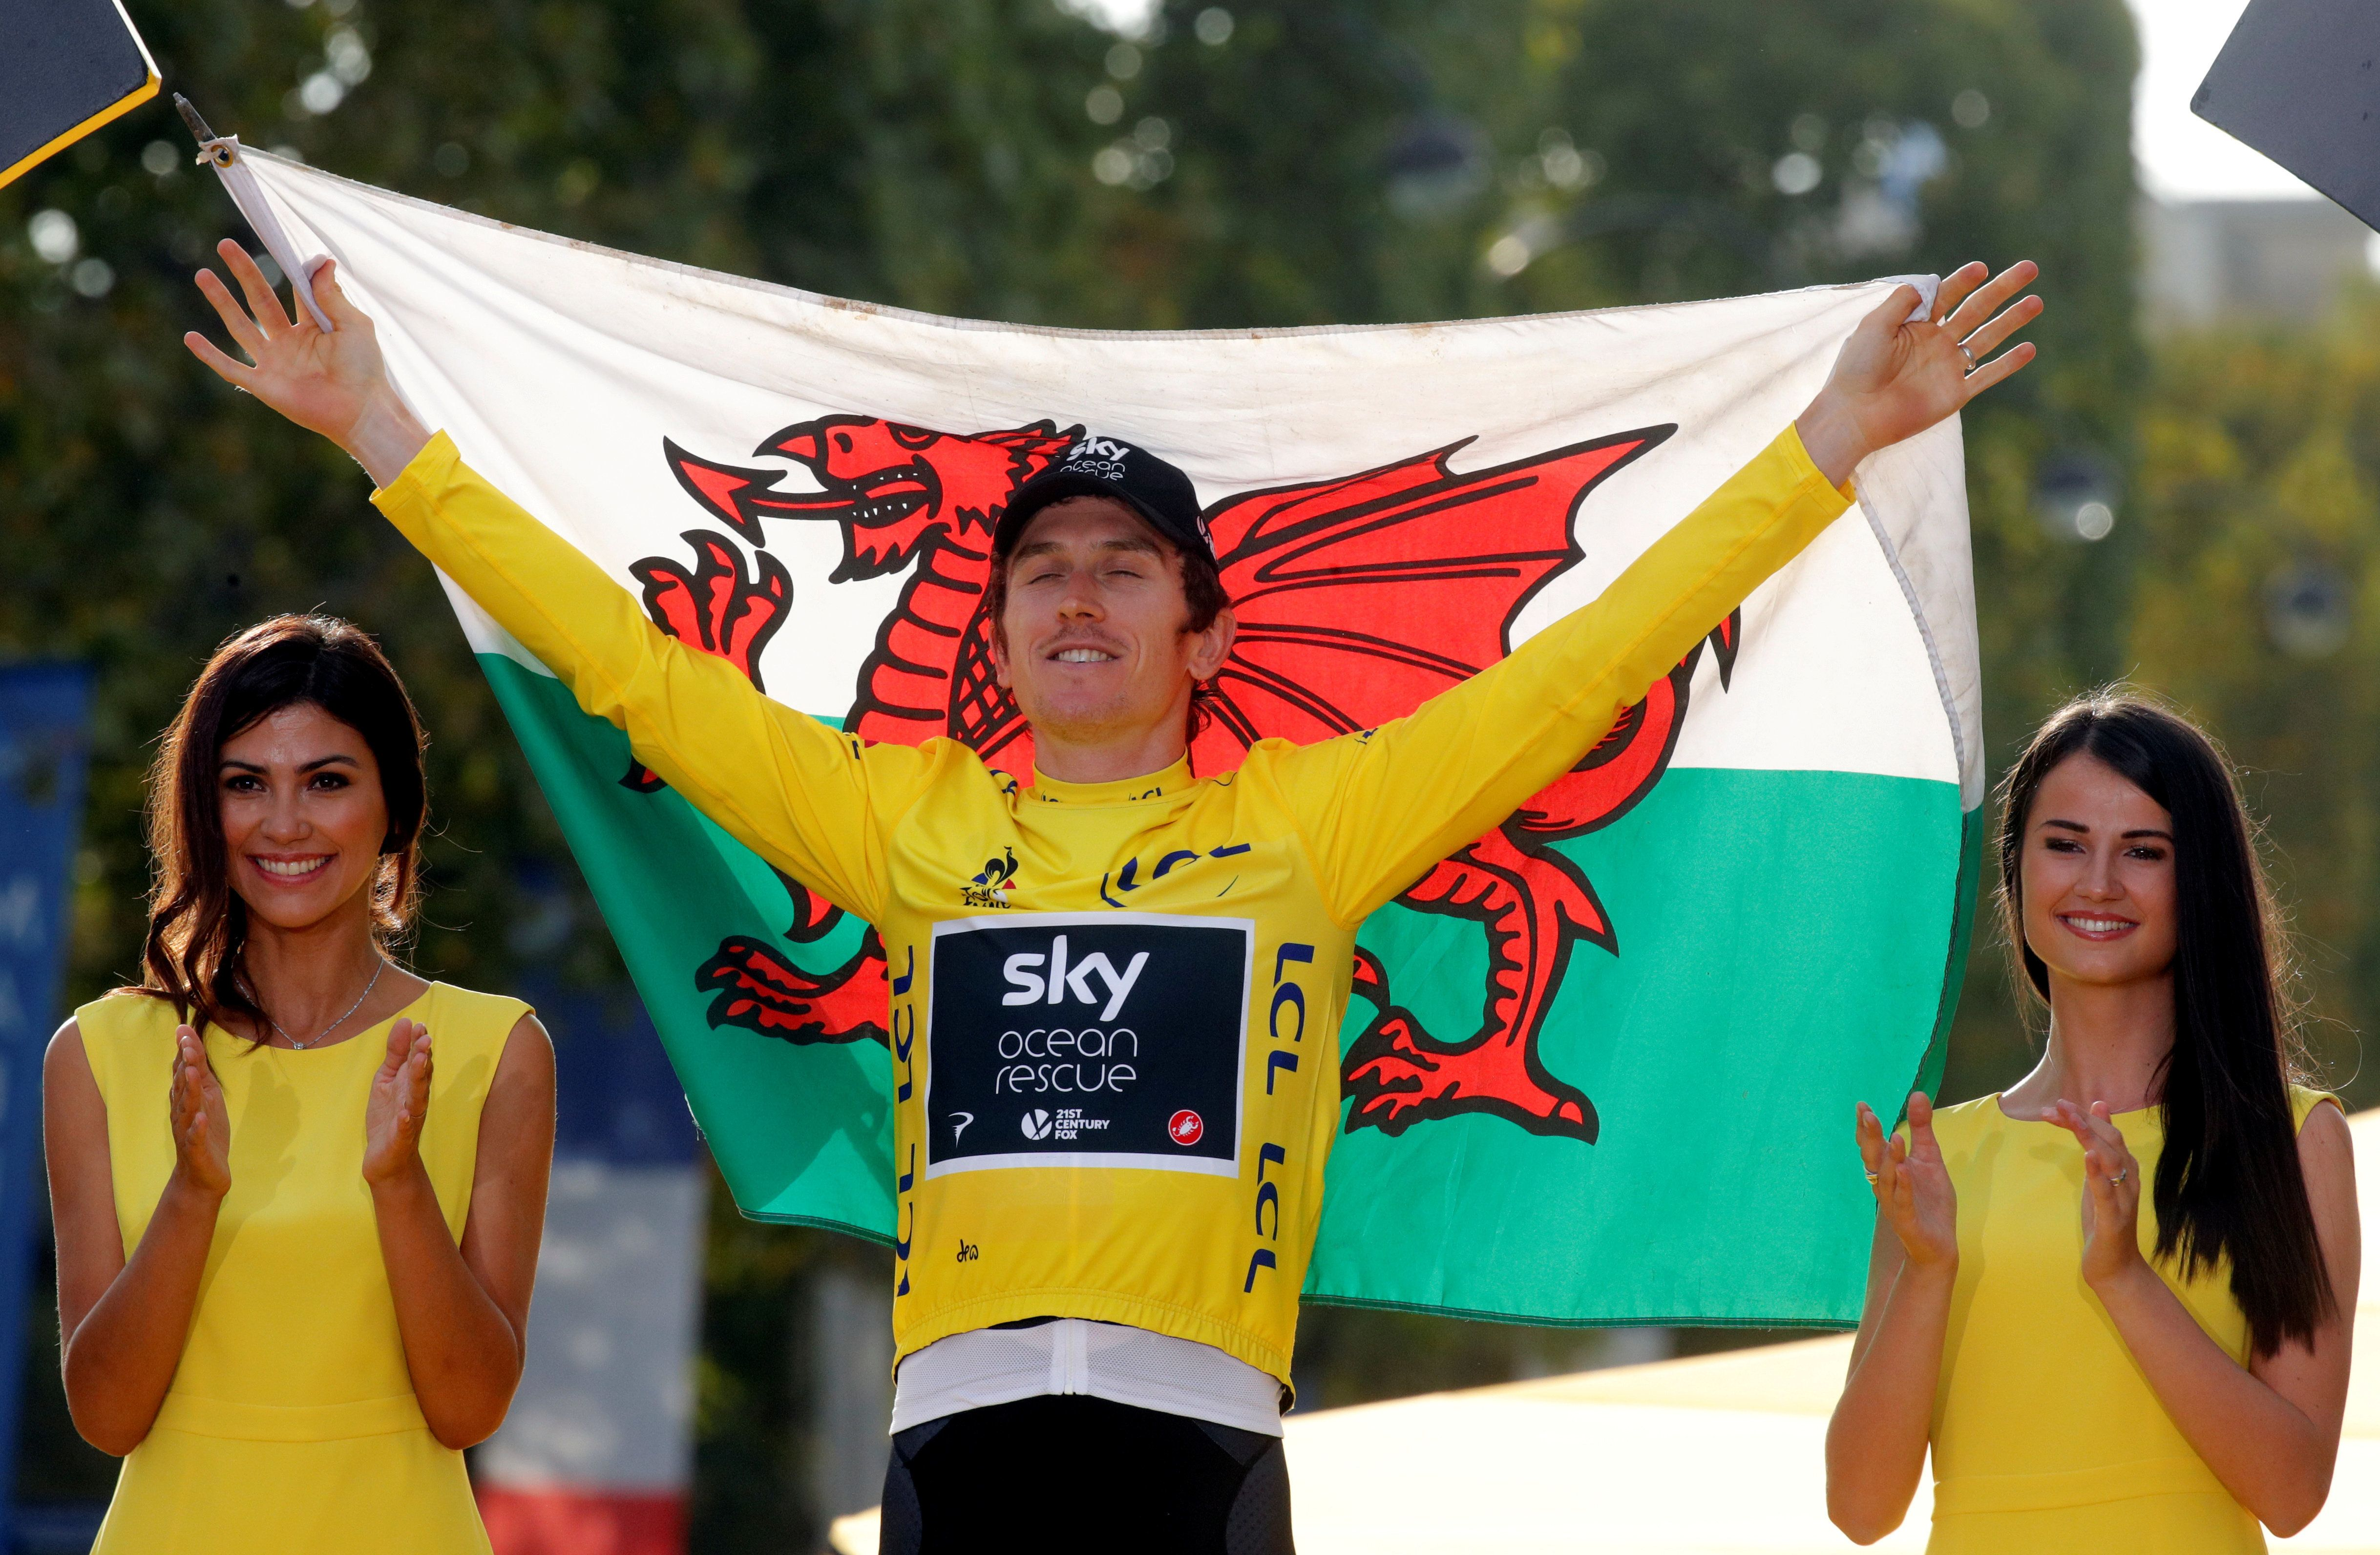 Geraint Thomas Wins Tour De France: 5 Things To Know About The Team Sky